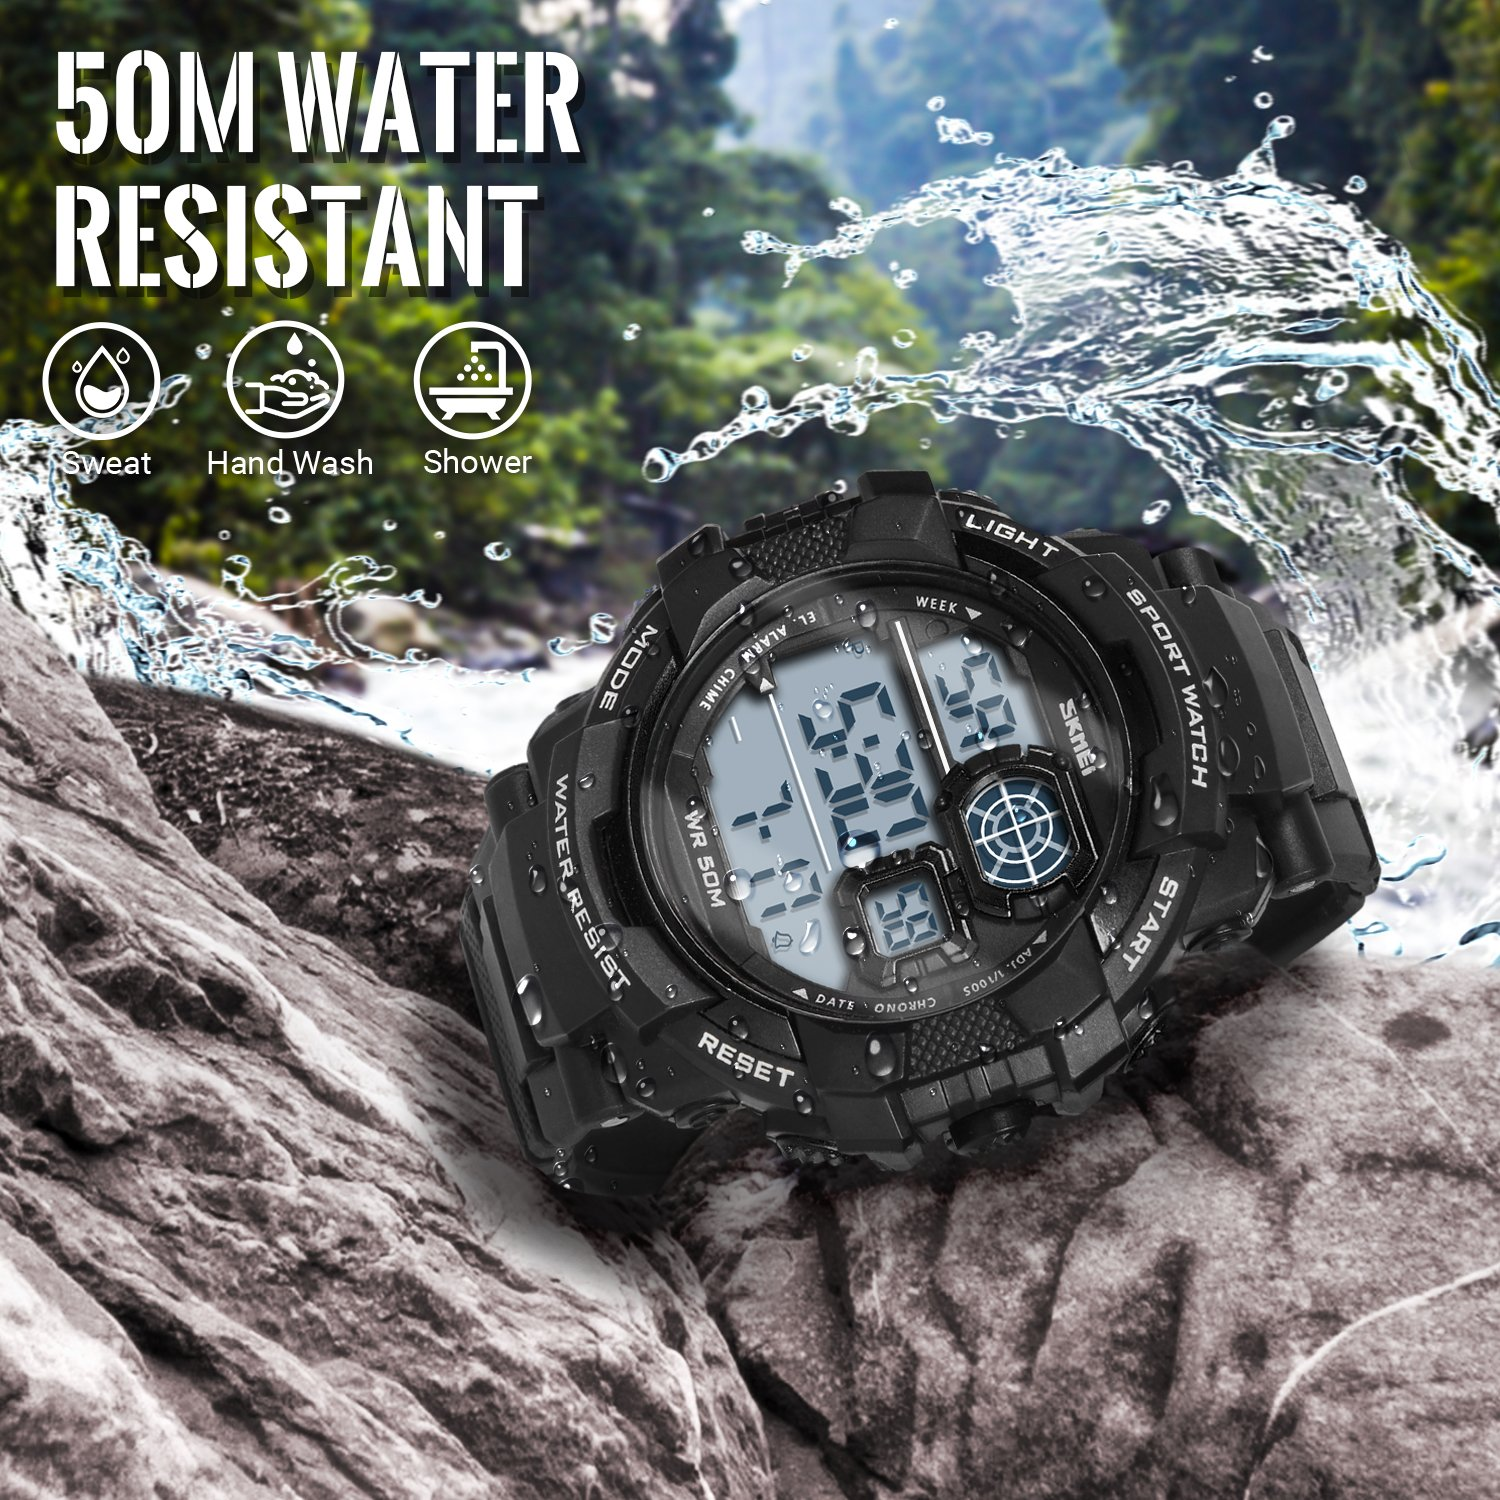 HIwatch Men's Sport Watches LED Military Watches and 50M Waterproof Casual Luminous Stopwatch Alarm Simple Army Watch, Electronic Analog Quartz Watches for Youth Students Gift, Black by Hi Watch (Image #4)